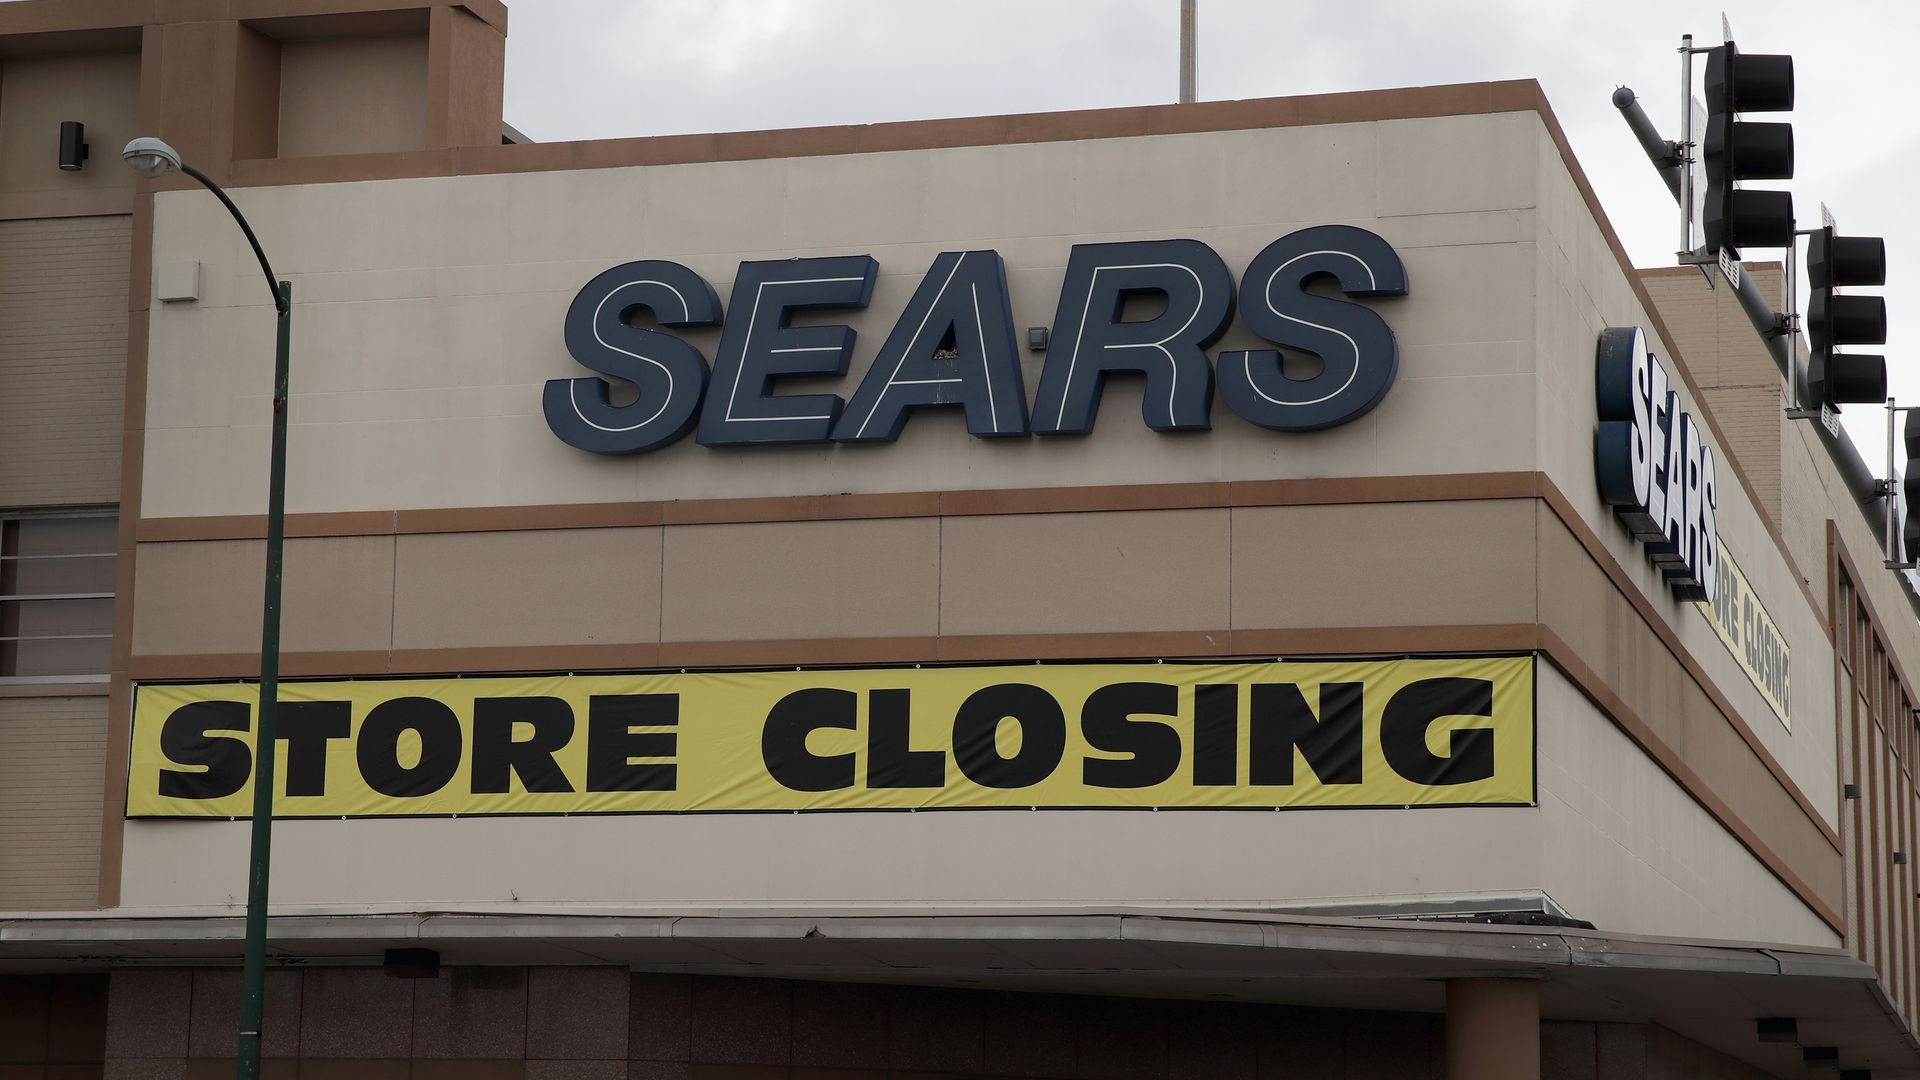 Sears store with a closing sign on it